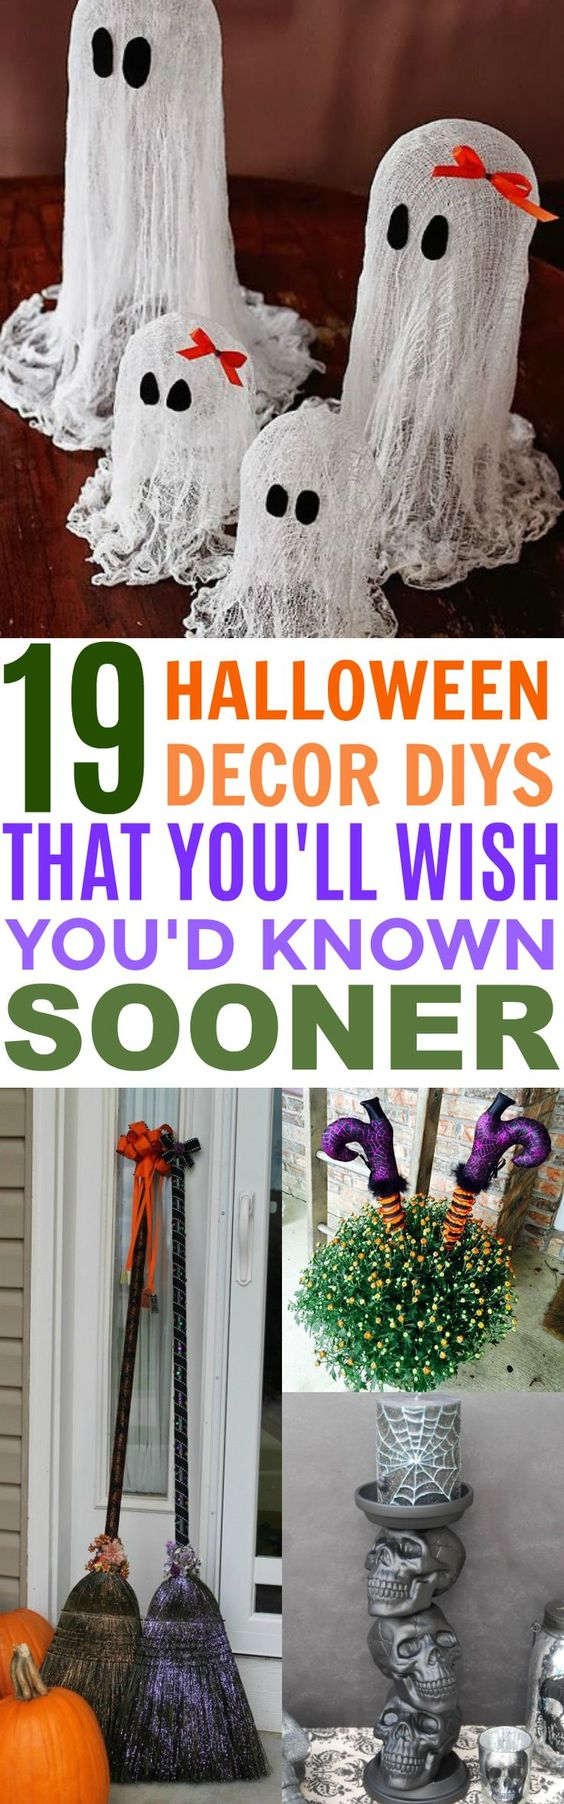 19 Spooktacular DIY Halloween Decor ideas You'll Wish You'd Known Sooner | Porch Ideas | Garage Decorations | Candle Holders | Goodie Bags